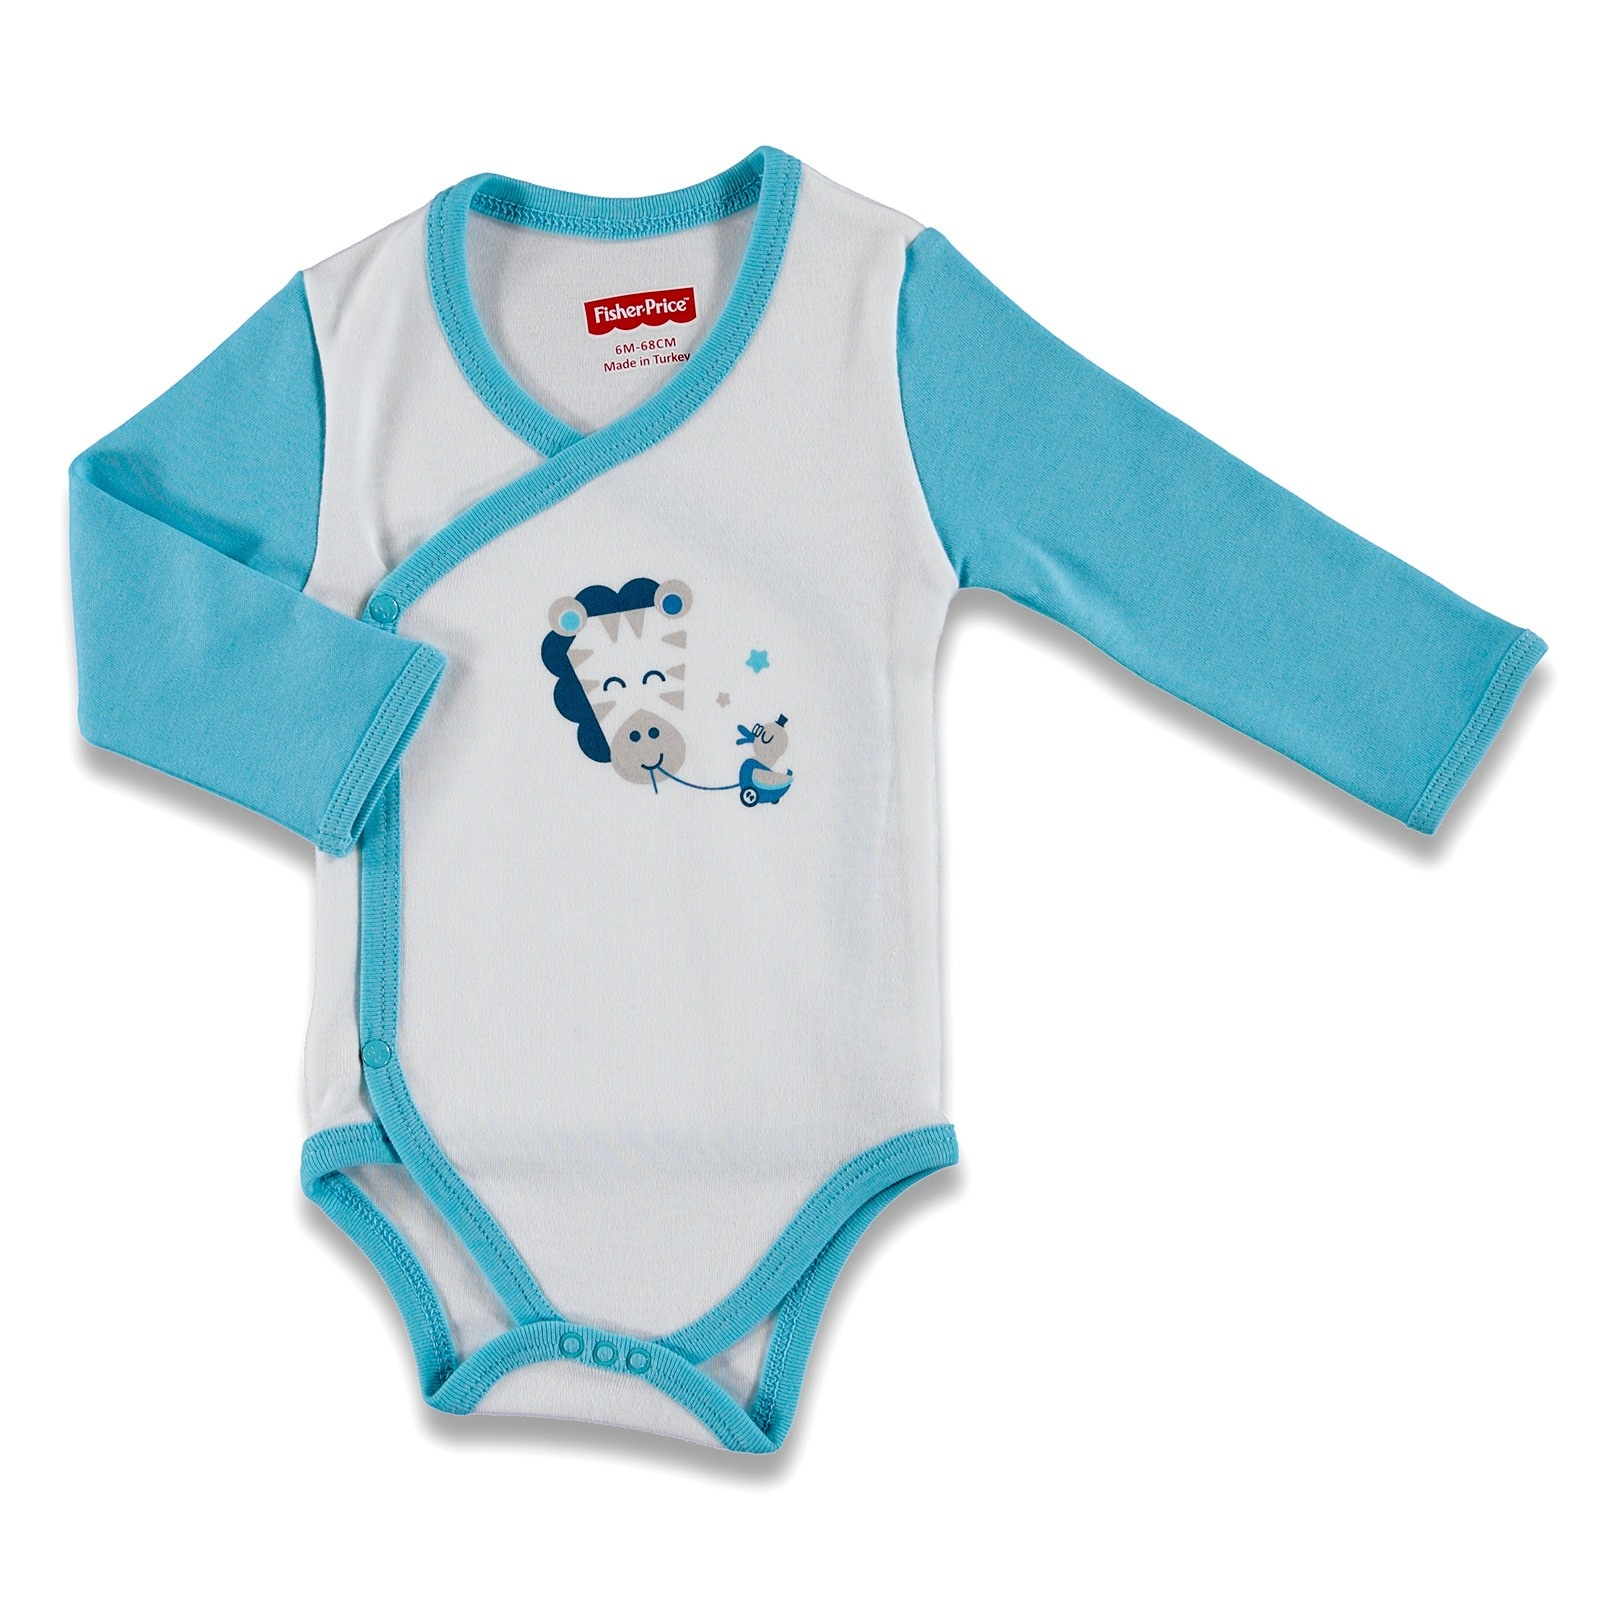 Ebebek Fisher Price Play With Me Baby Long Sleeve Bodysuits